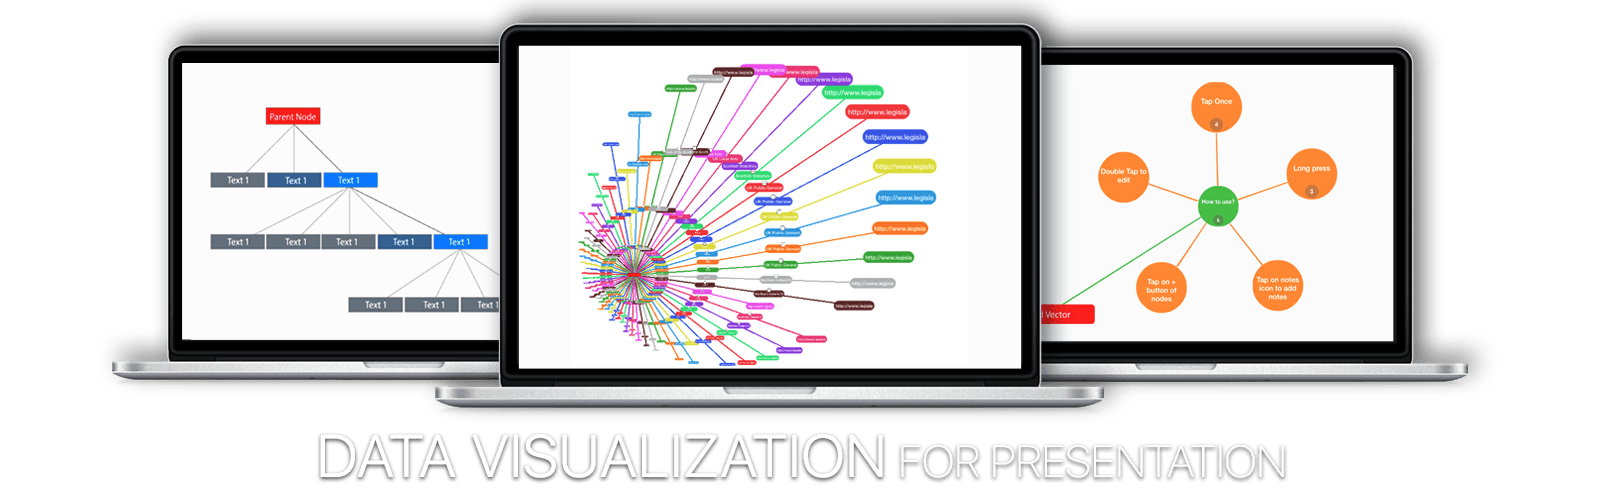 DATA VISUALIZATION FOR PRESENTATION